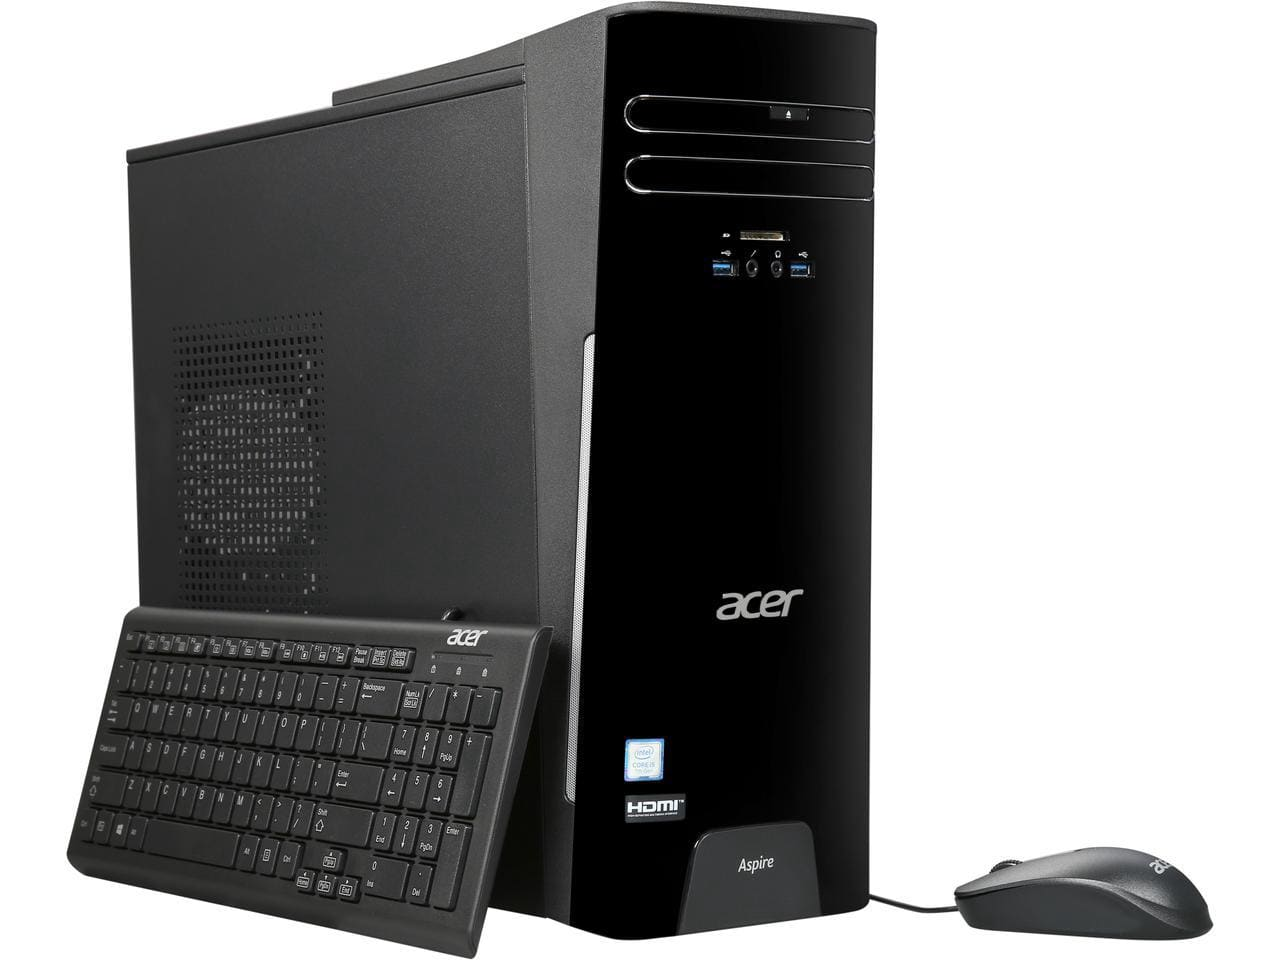 Acer Aspire TC-780 Desktop PC: Intel Core i5-7400, 16GB DDR4, 256GB SSD, Win 10 $529.99 + Free Shipping @ Newegg